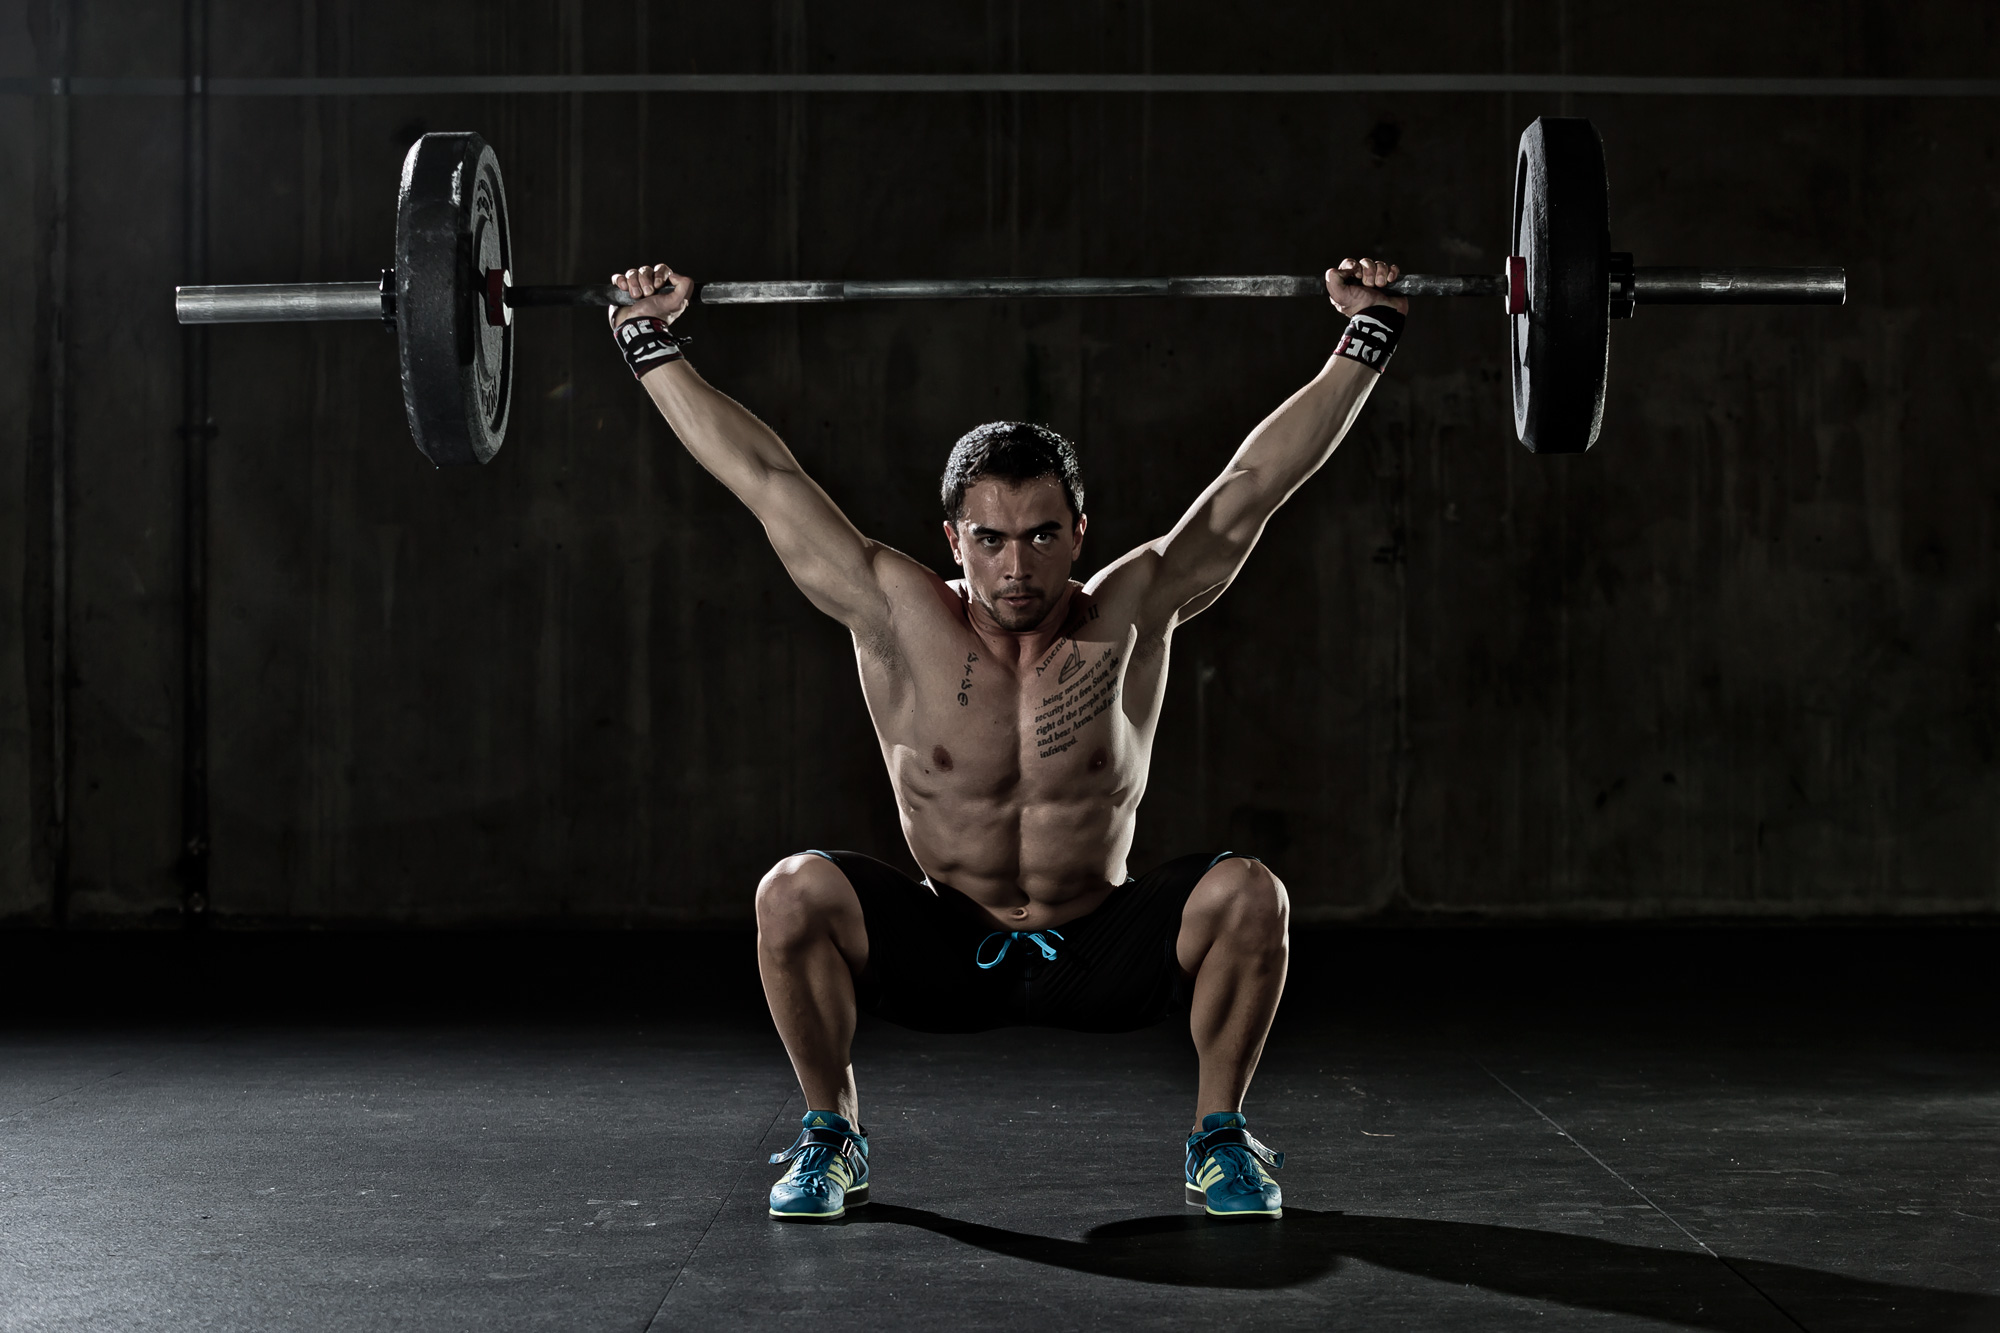 Crossfit Wallpapers High Quality Download 2000x1333